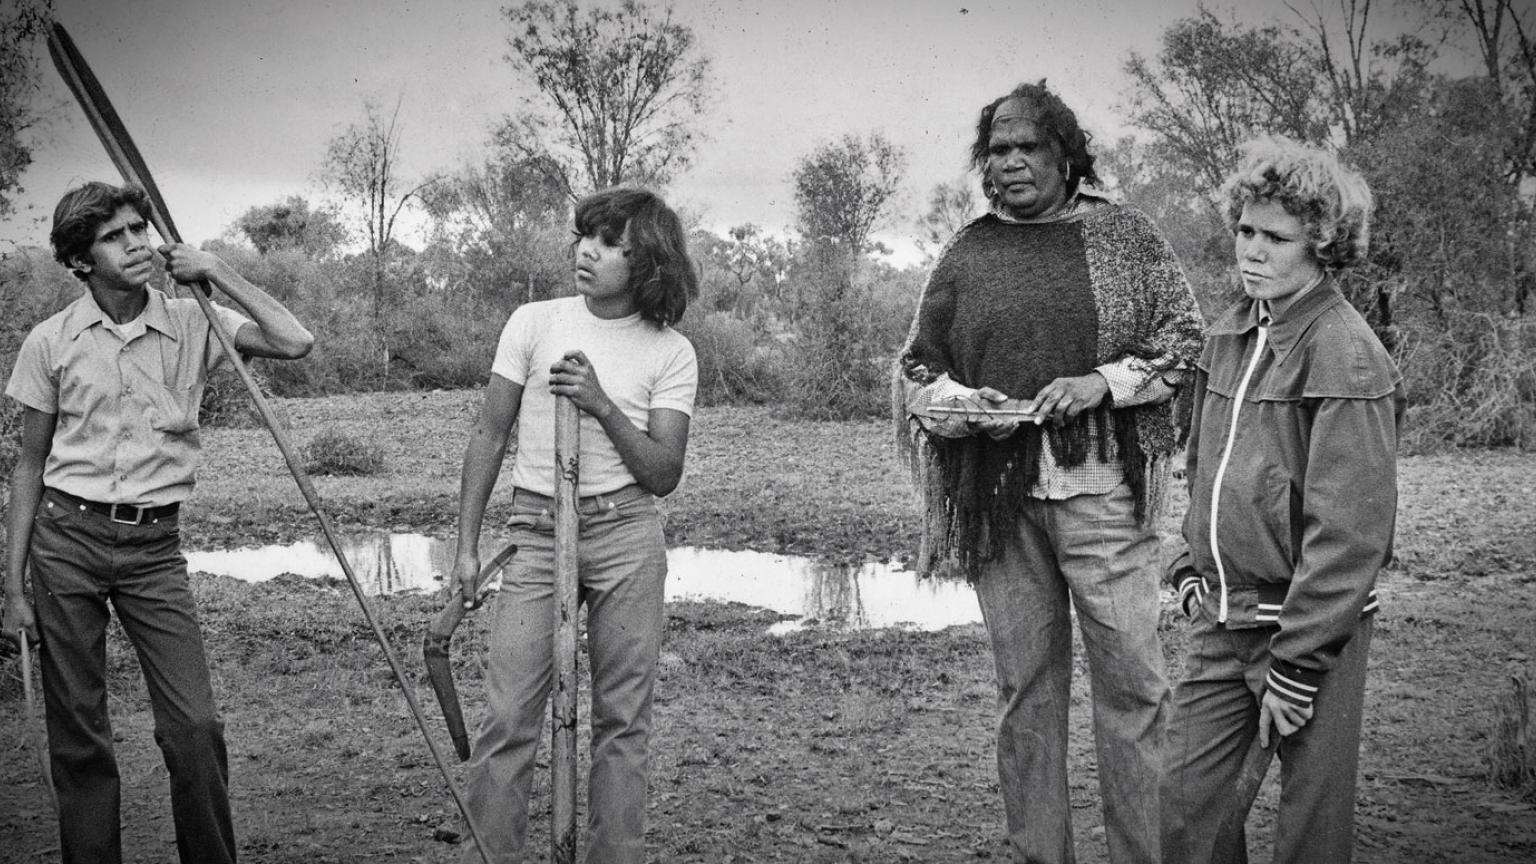 Four Aboriginal males stand in a bush setting wearing casual clothes and carrying traditional hunting tools.